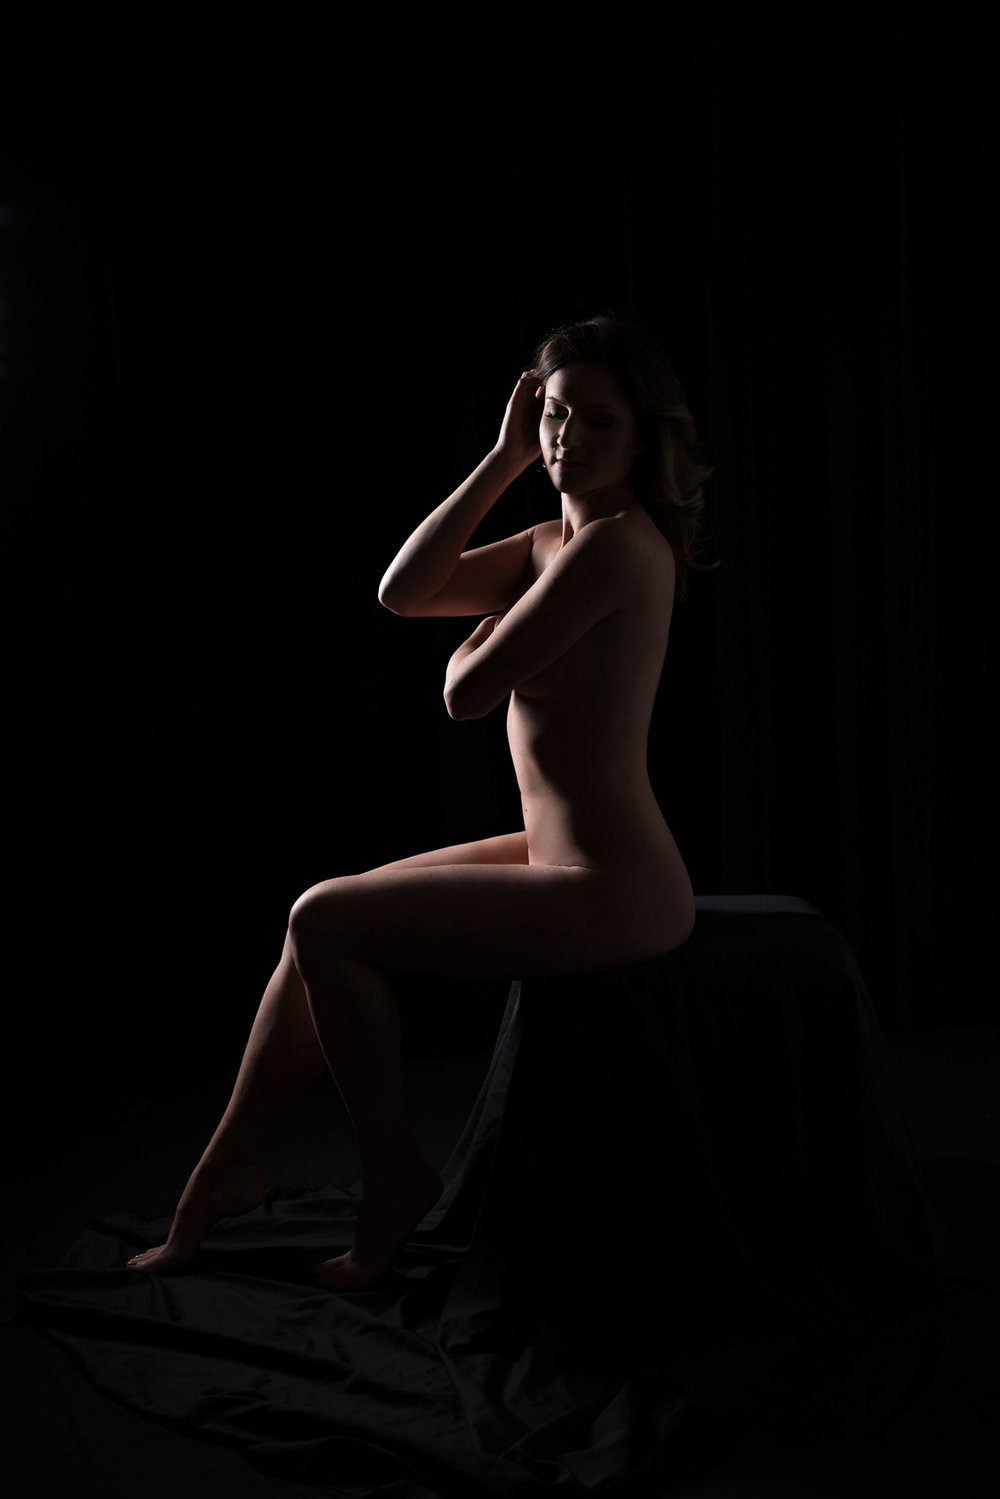 Denver Art nude photography